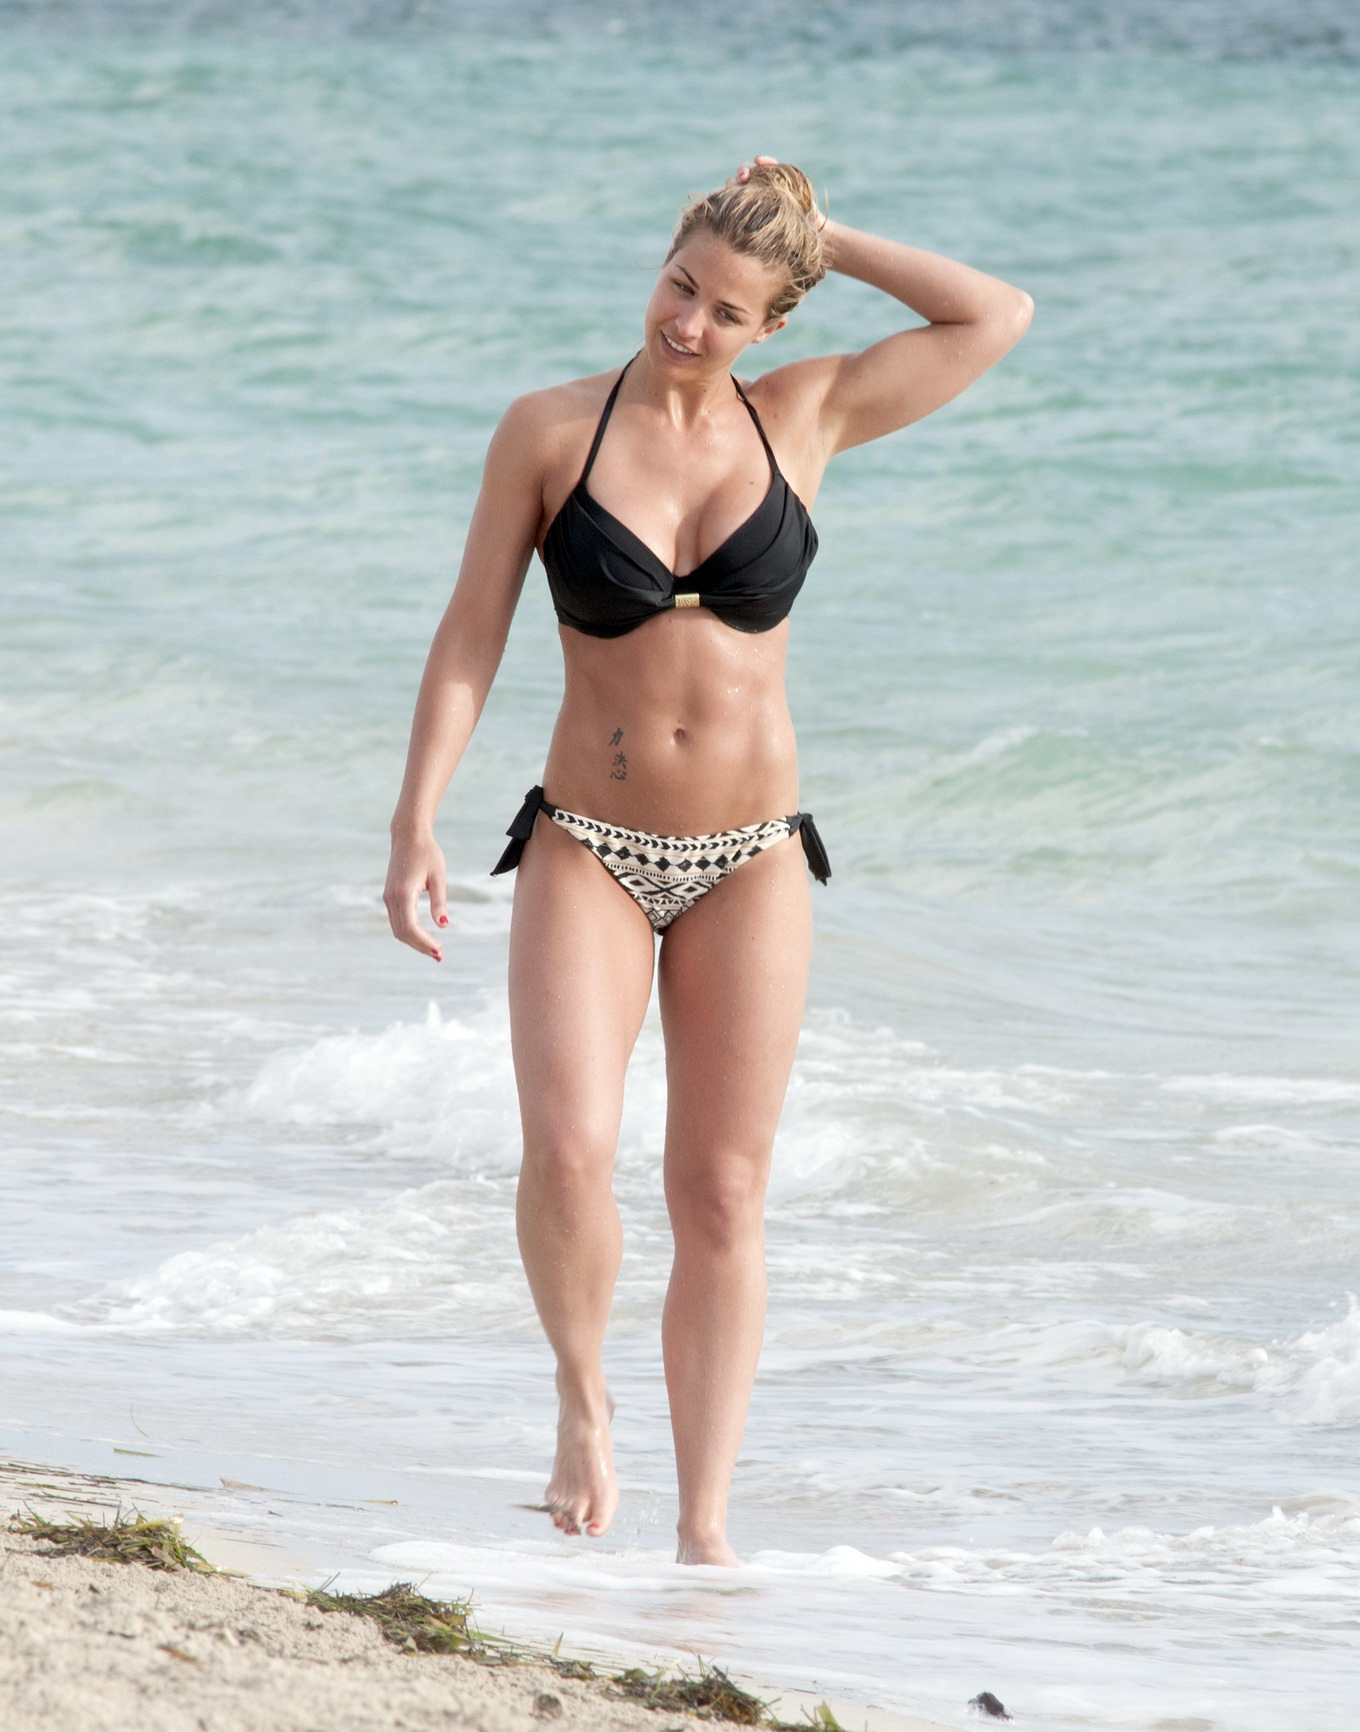 Gemma Atkinson stripping her black bikini top at the beach in Cuba: www.celeb6free.com/pics/celeb3970/topcelebs.html